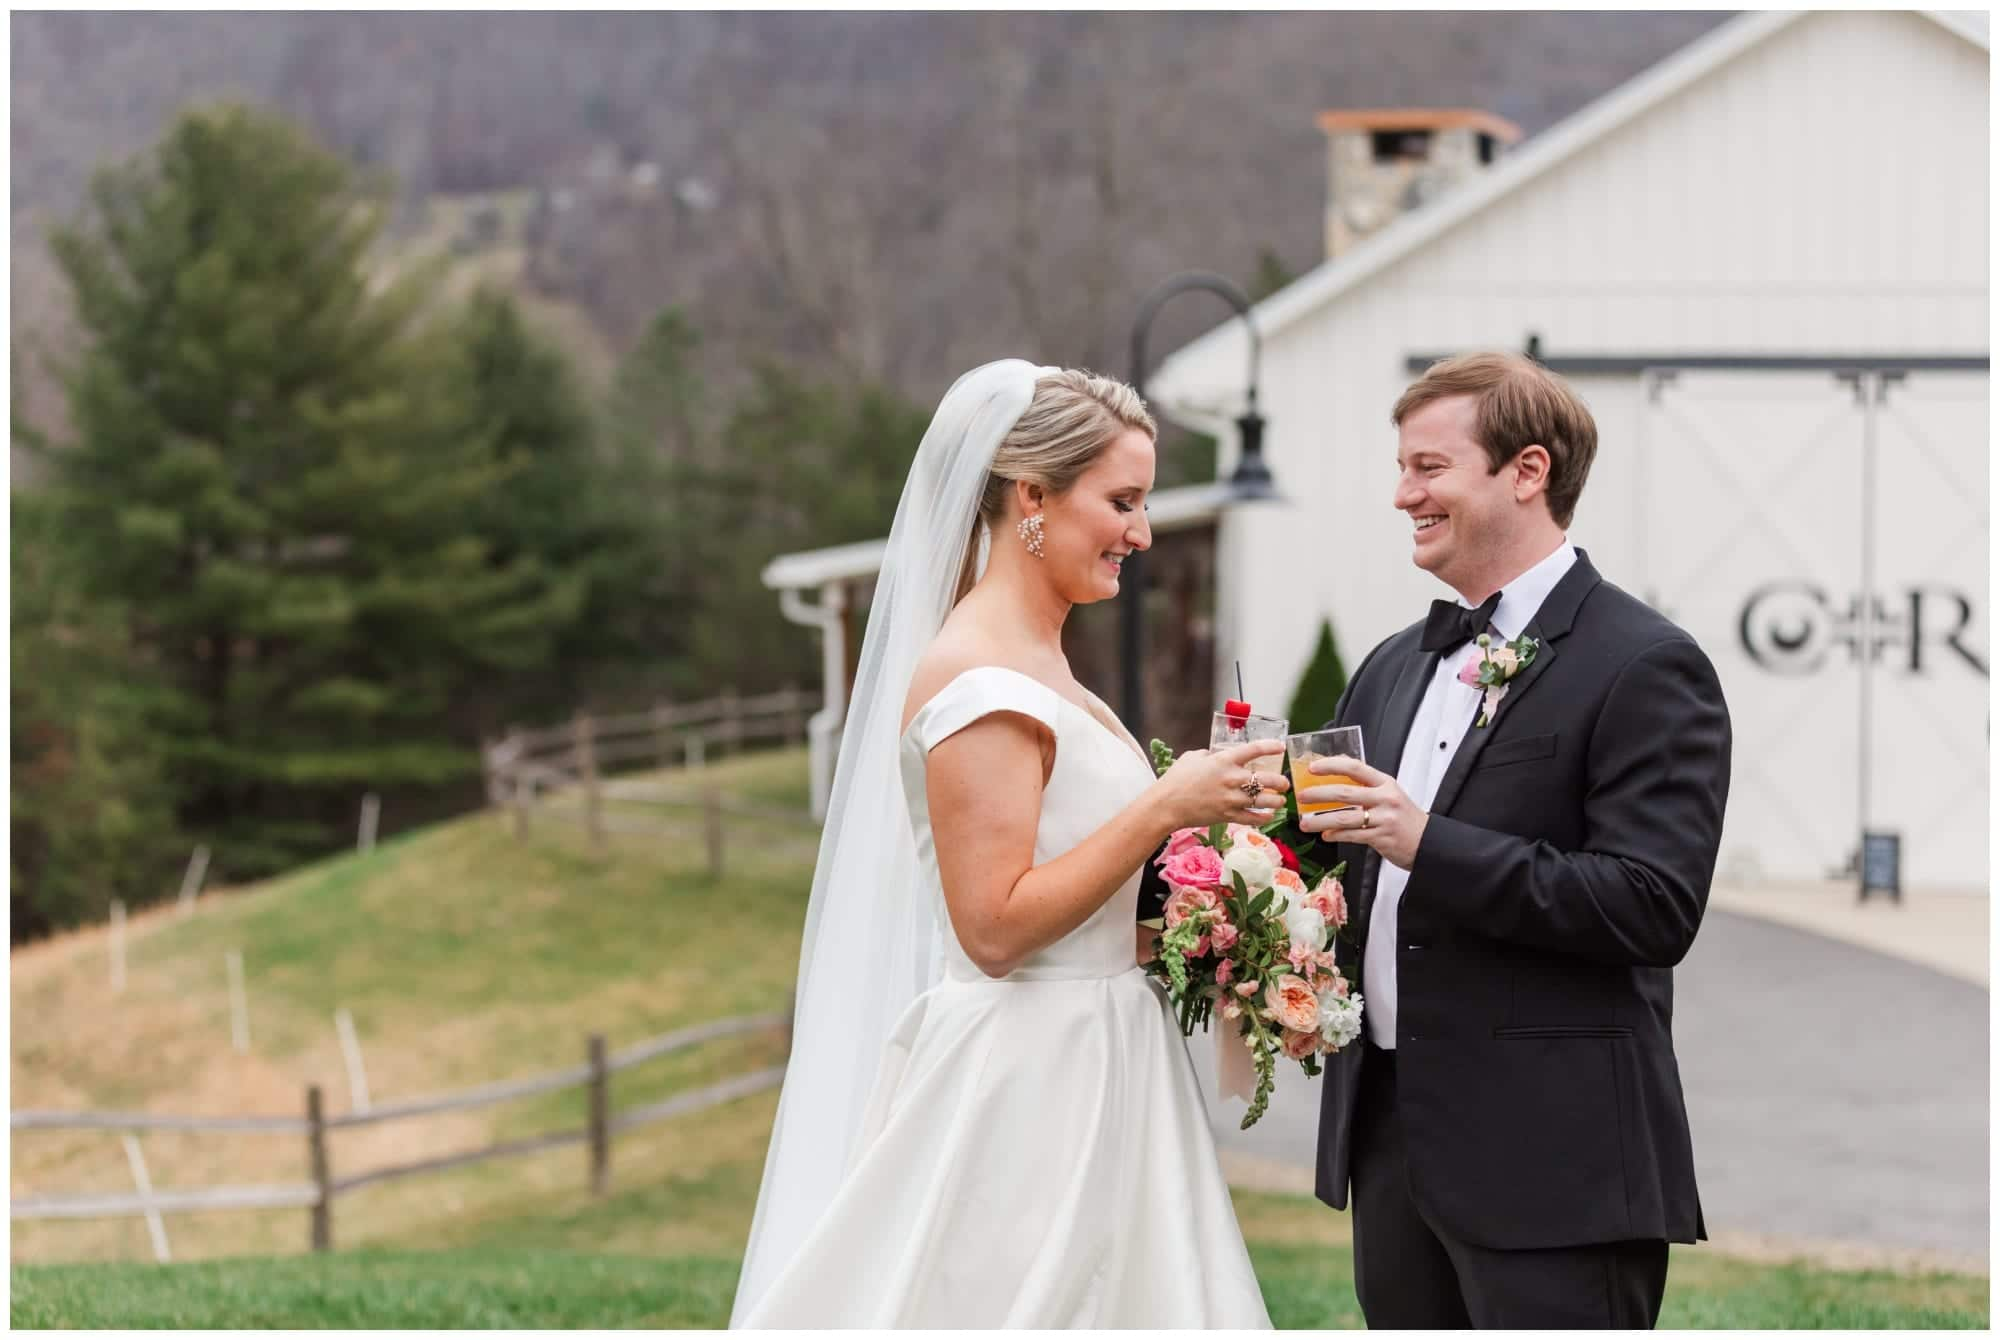 Bride and Groom share a toast after wedding